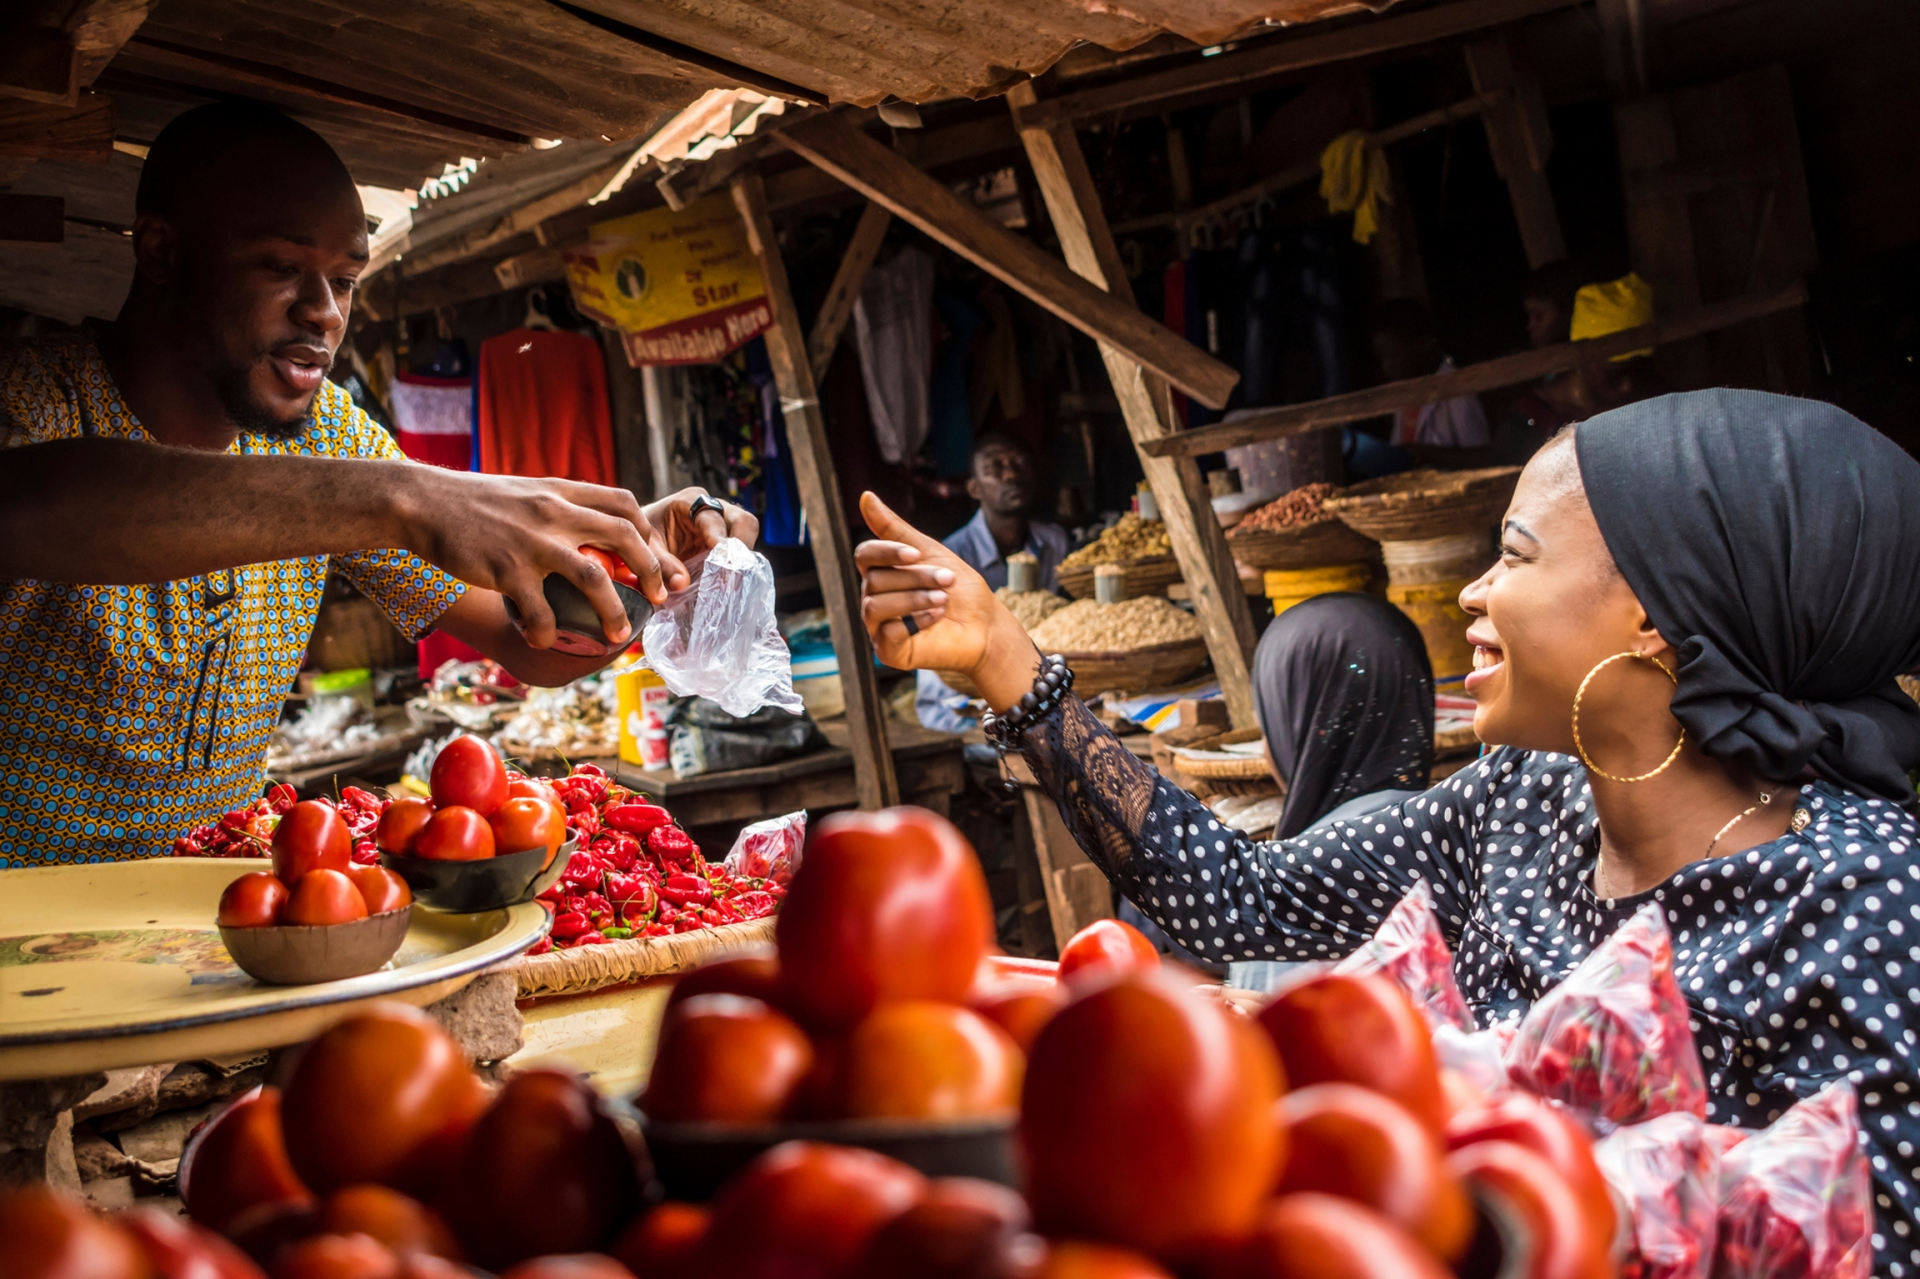 Bayer commits to boosting fruit and vegetable consumption worldwide